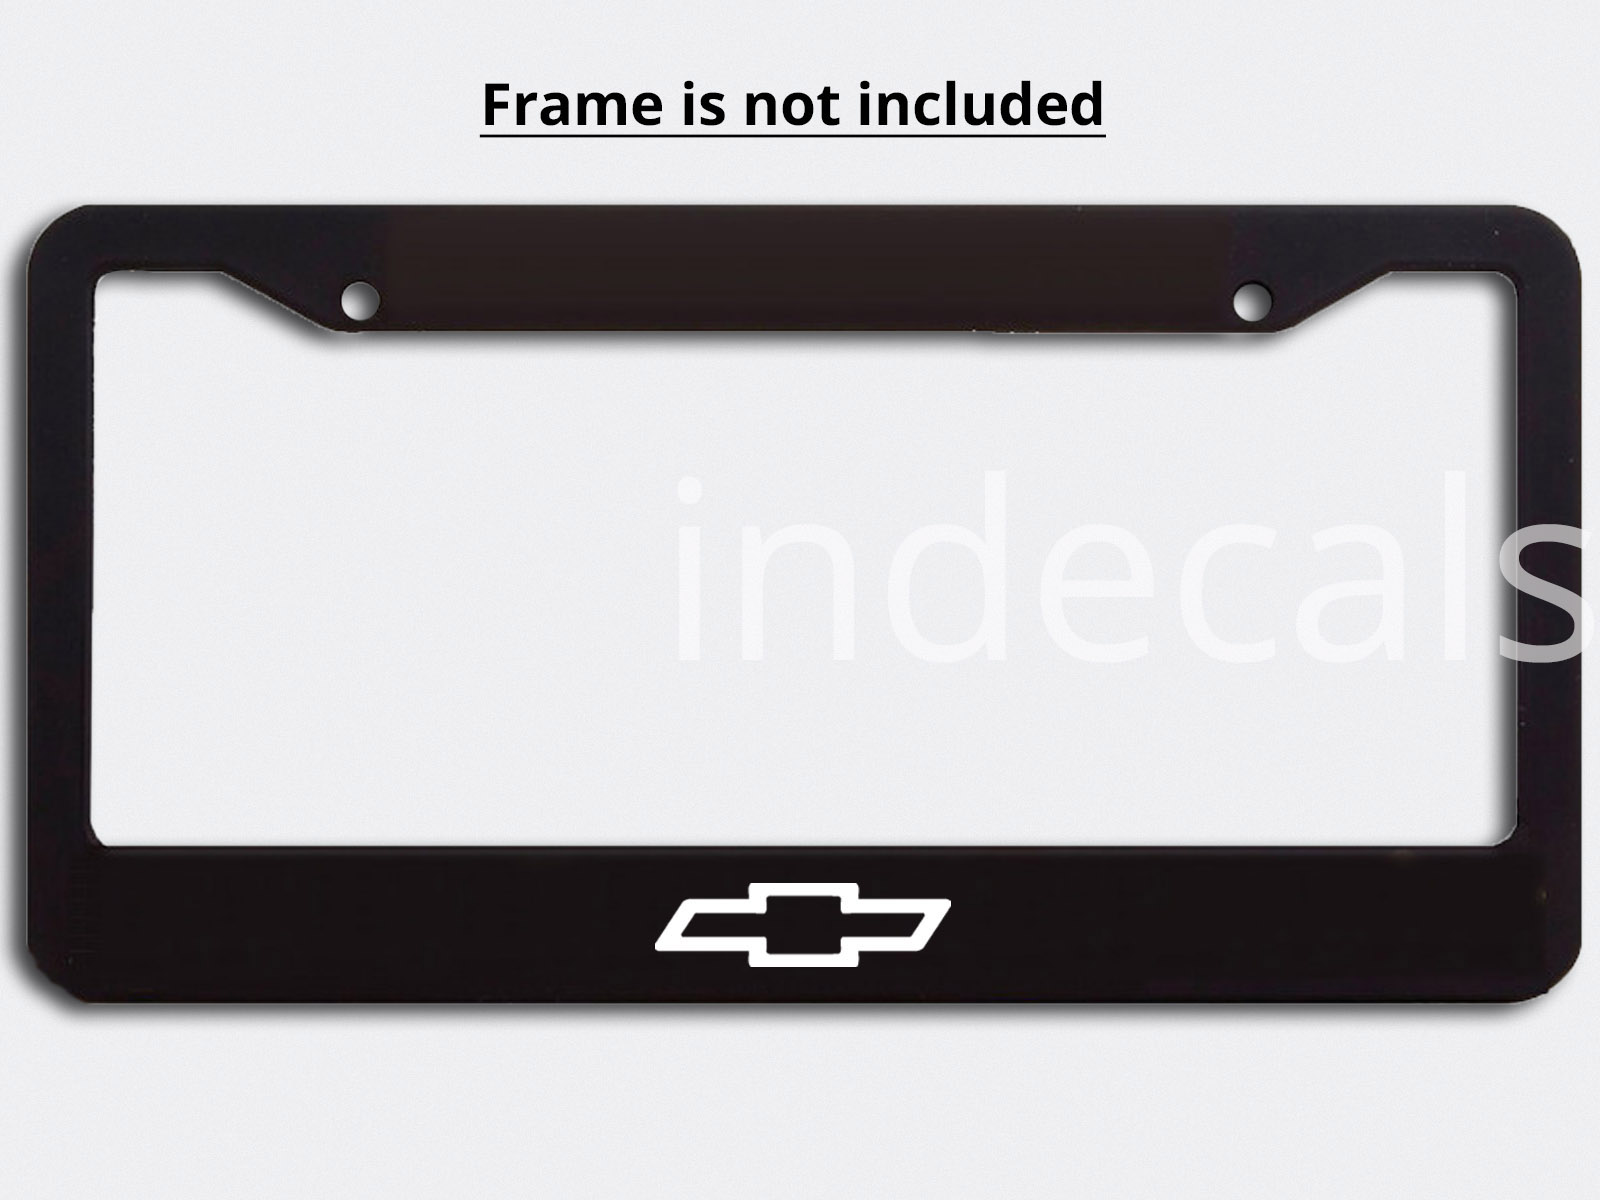 3 x Chevrolet Stickers for License Plate Frame - White - indecals.com